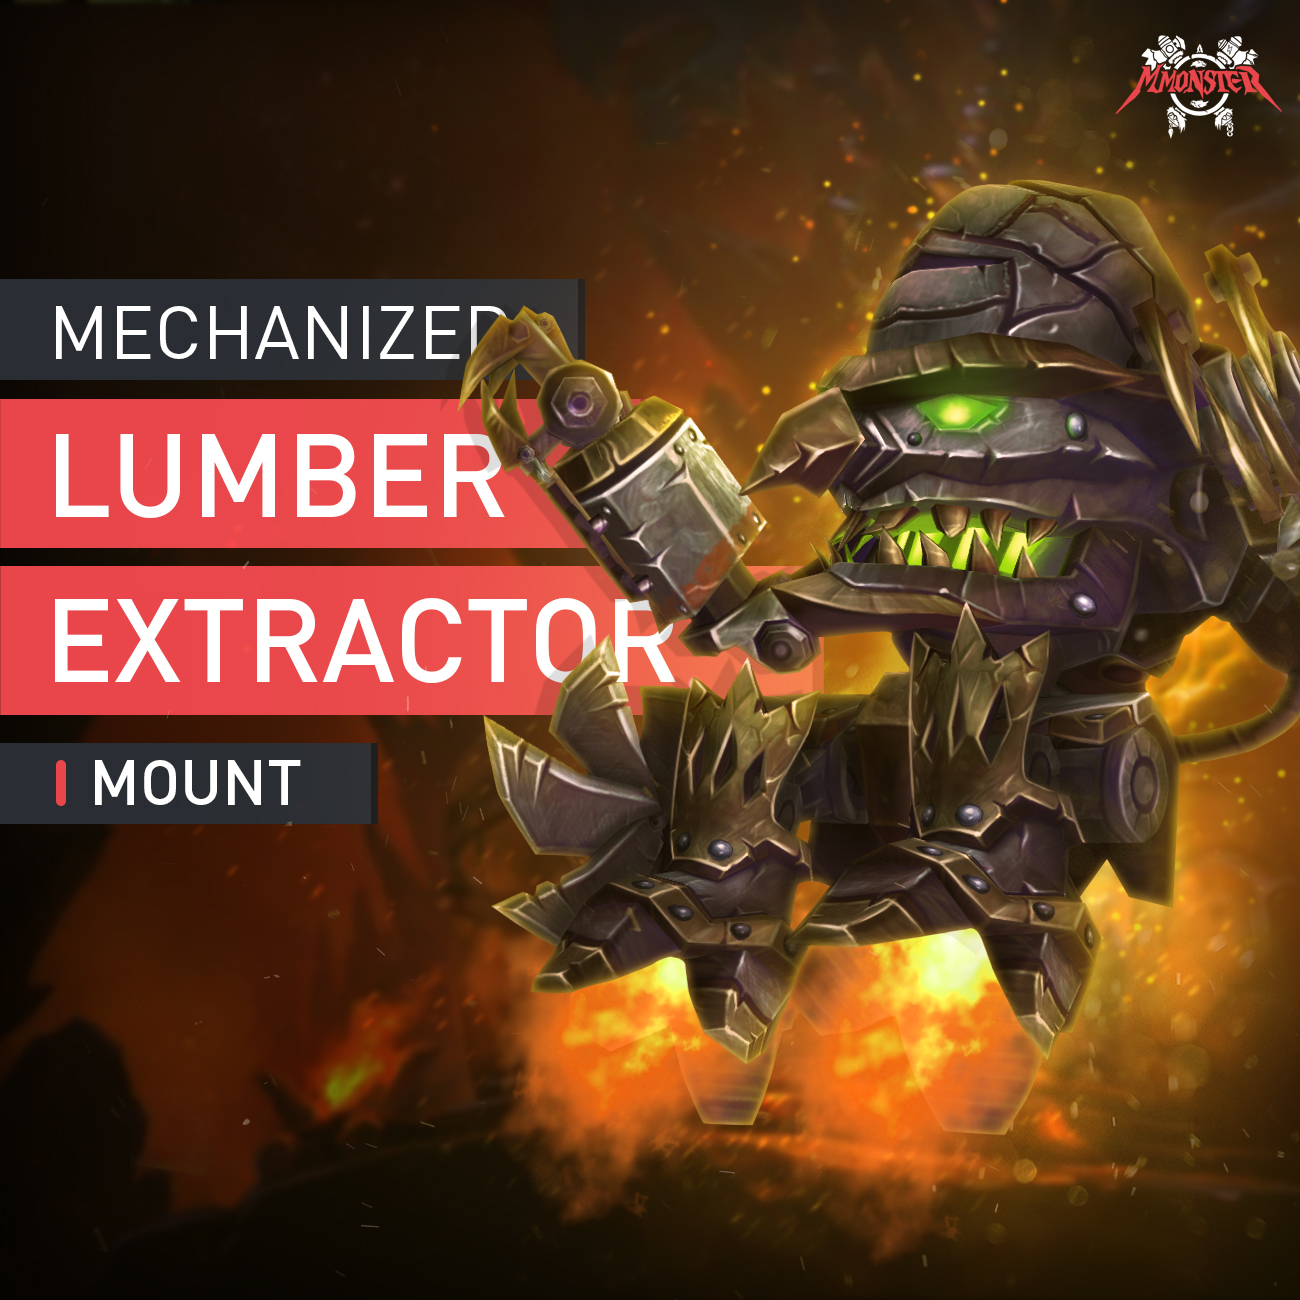 Mechanized Lumber Extractor